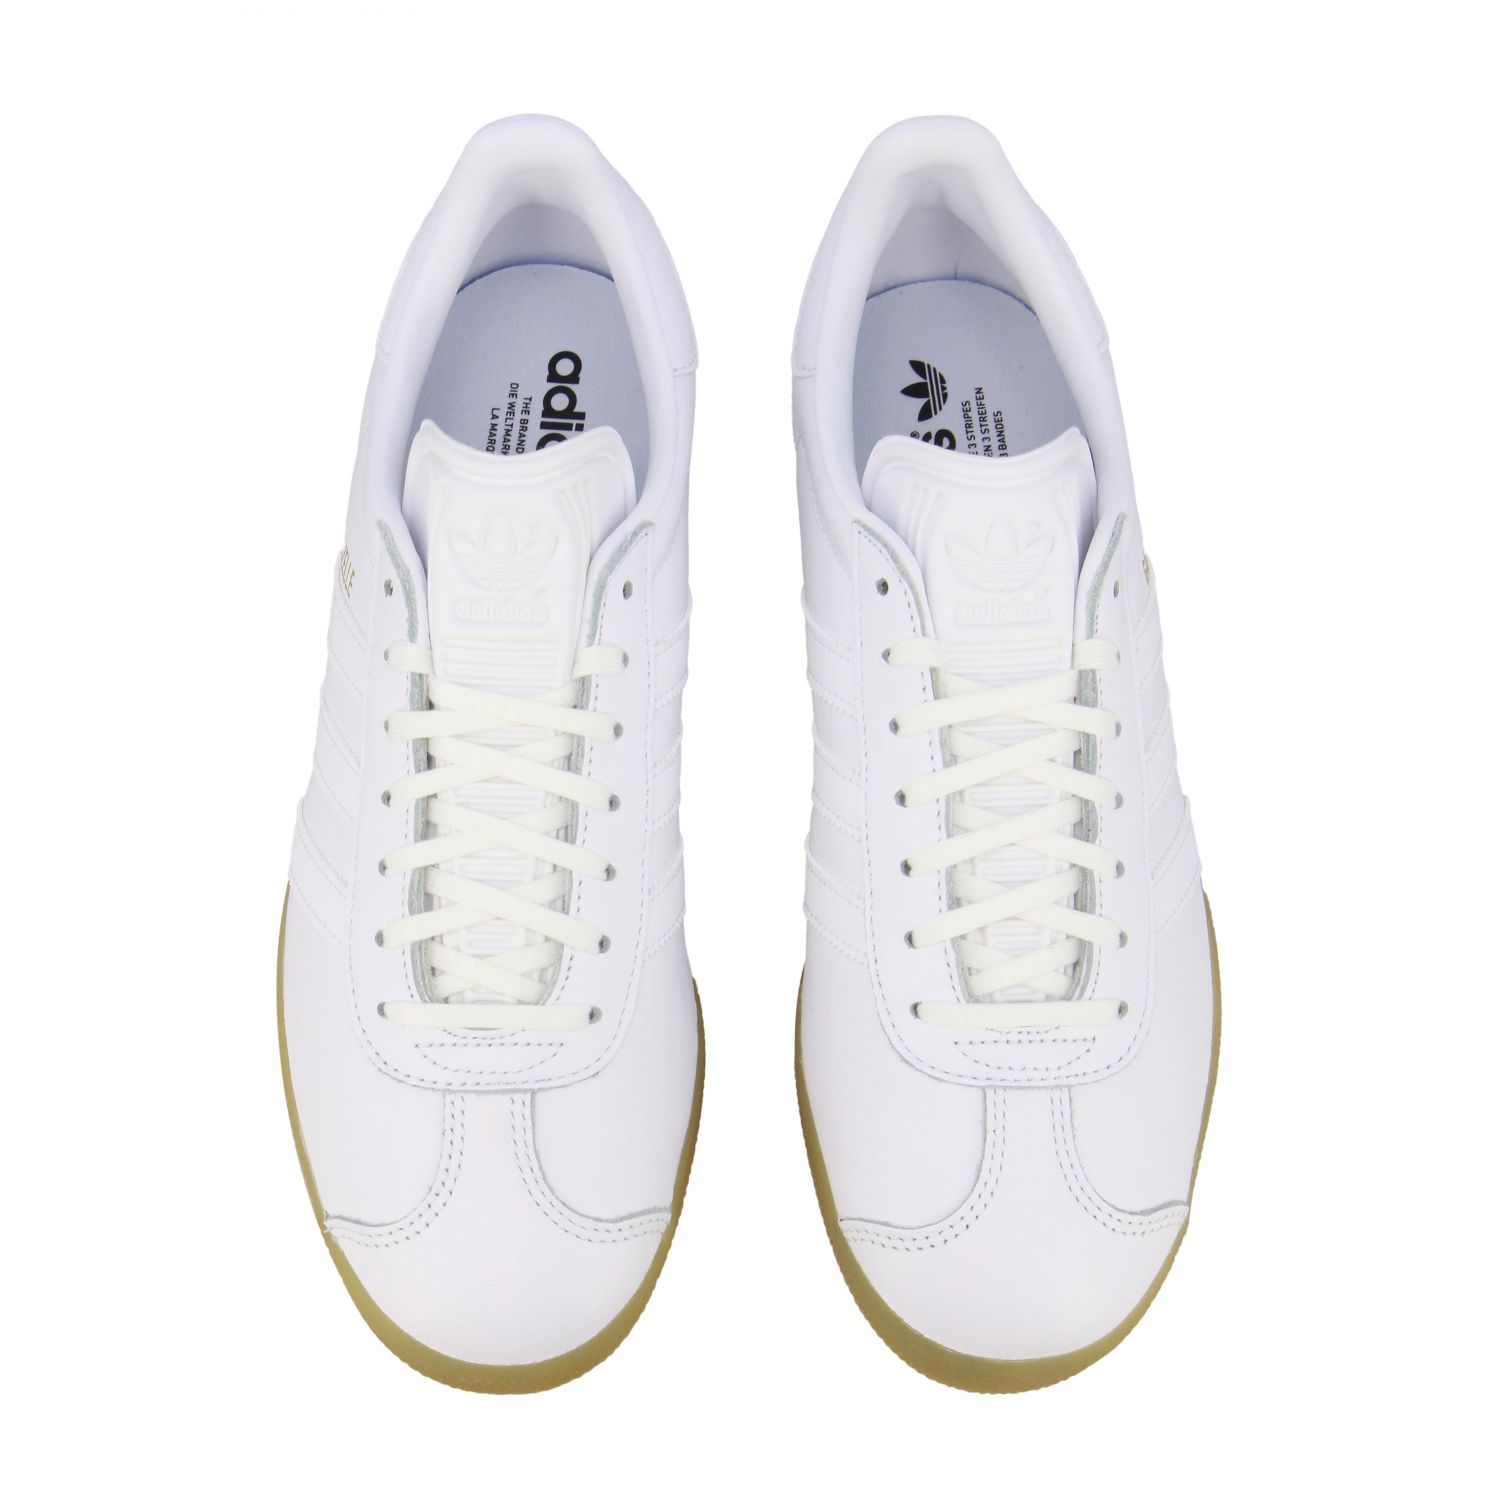 Sneakers Adidas Originals: Adidas Originals Gazelle leather sneakers with logo white 3